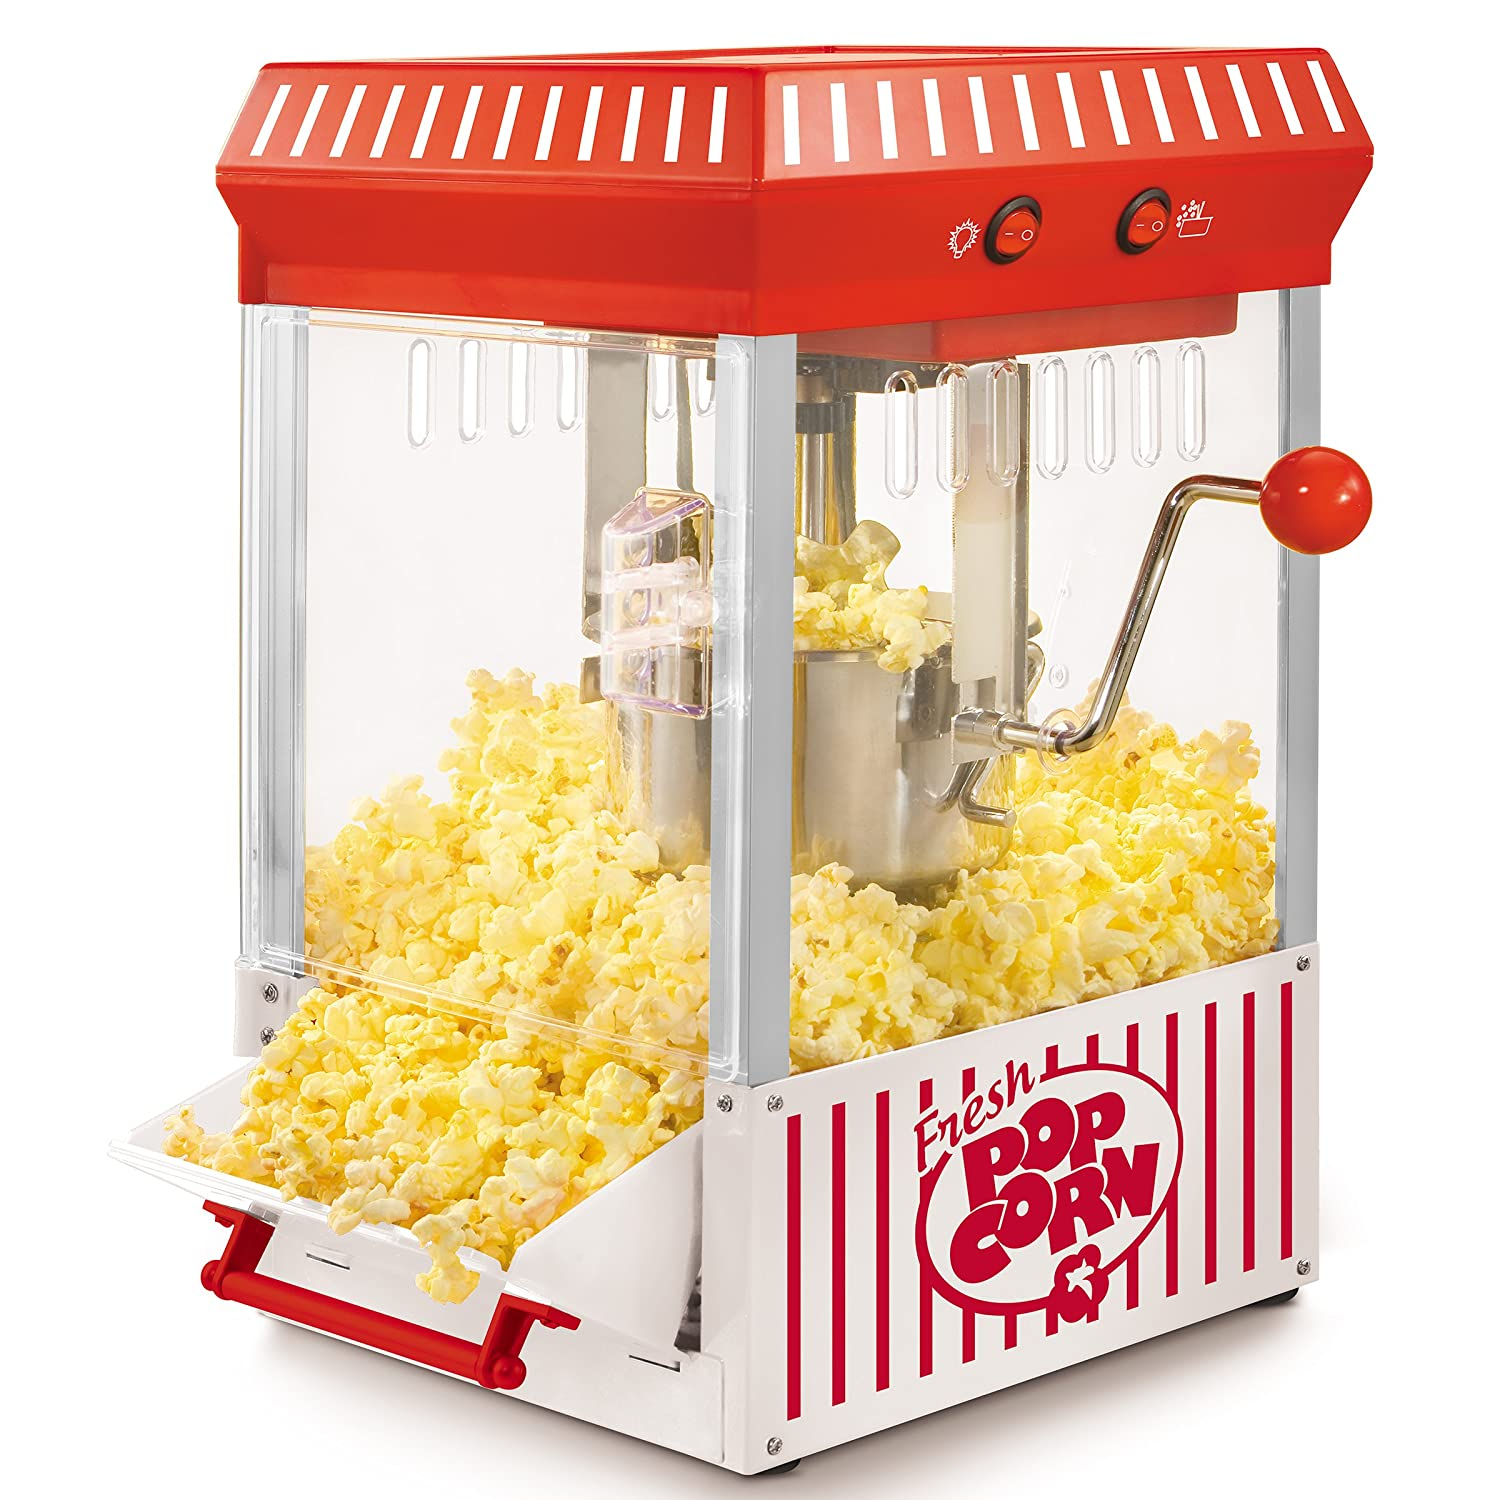 Nostalgia Popcorn Machine Black Friday Deal 2019